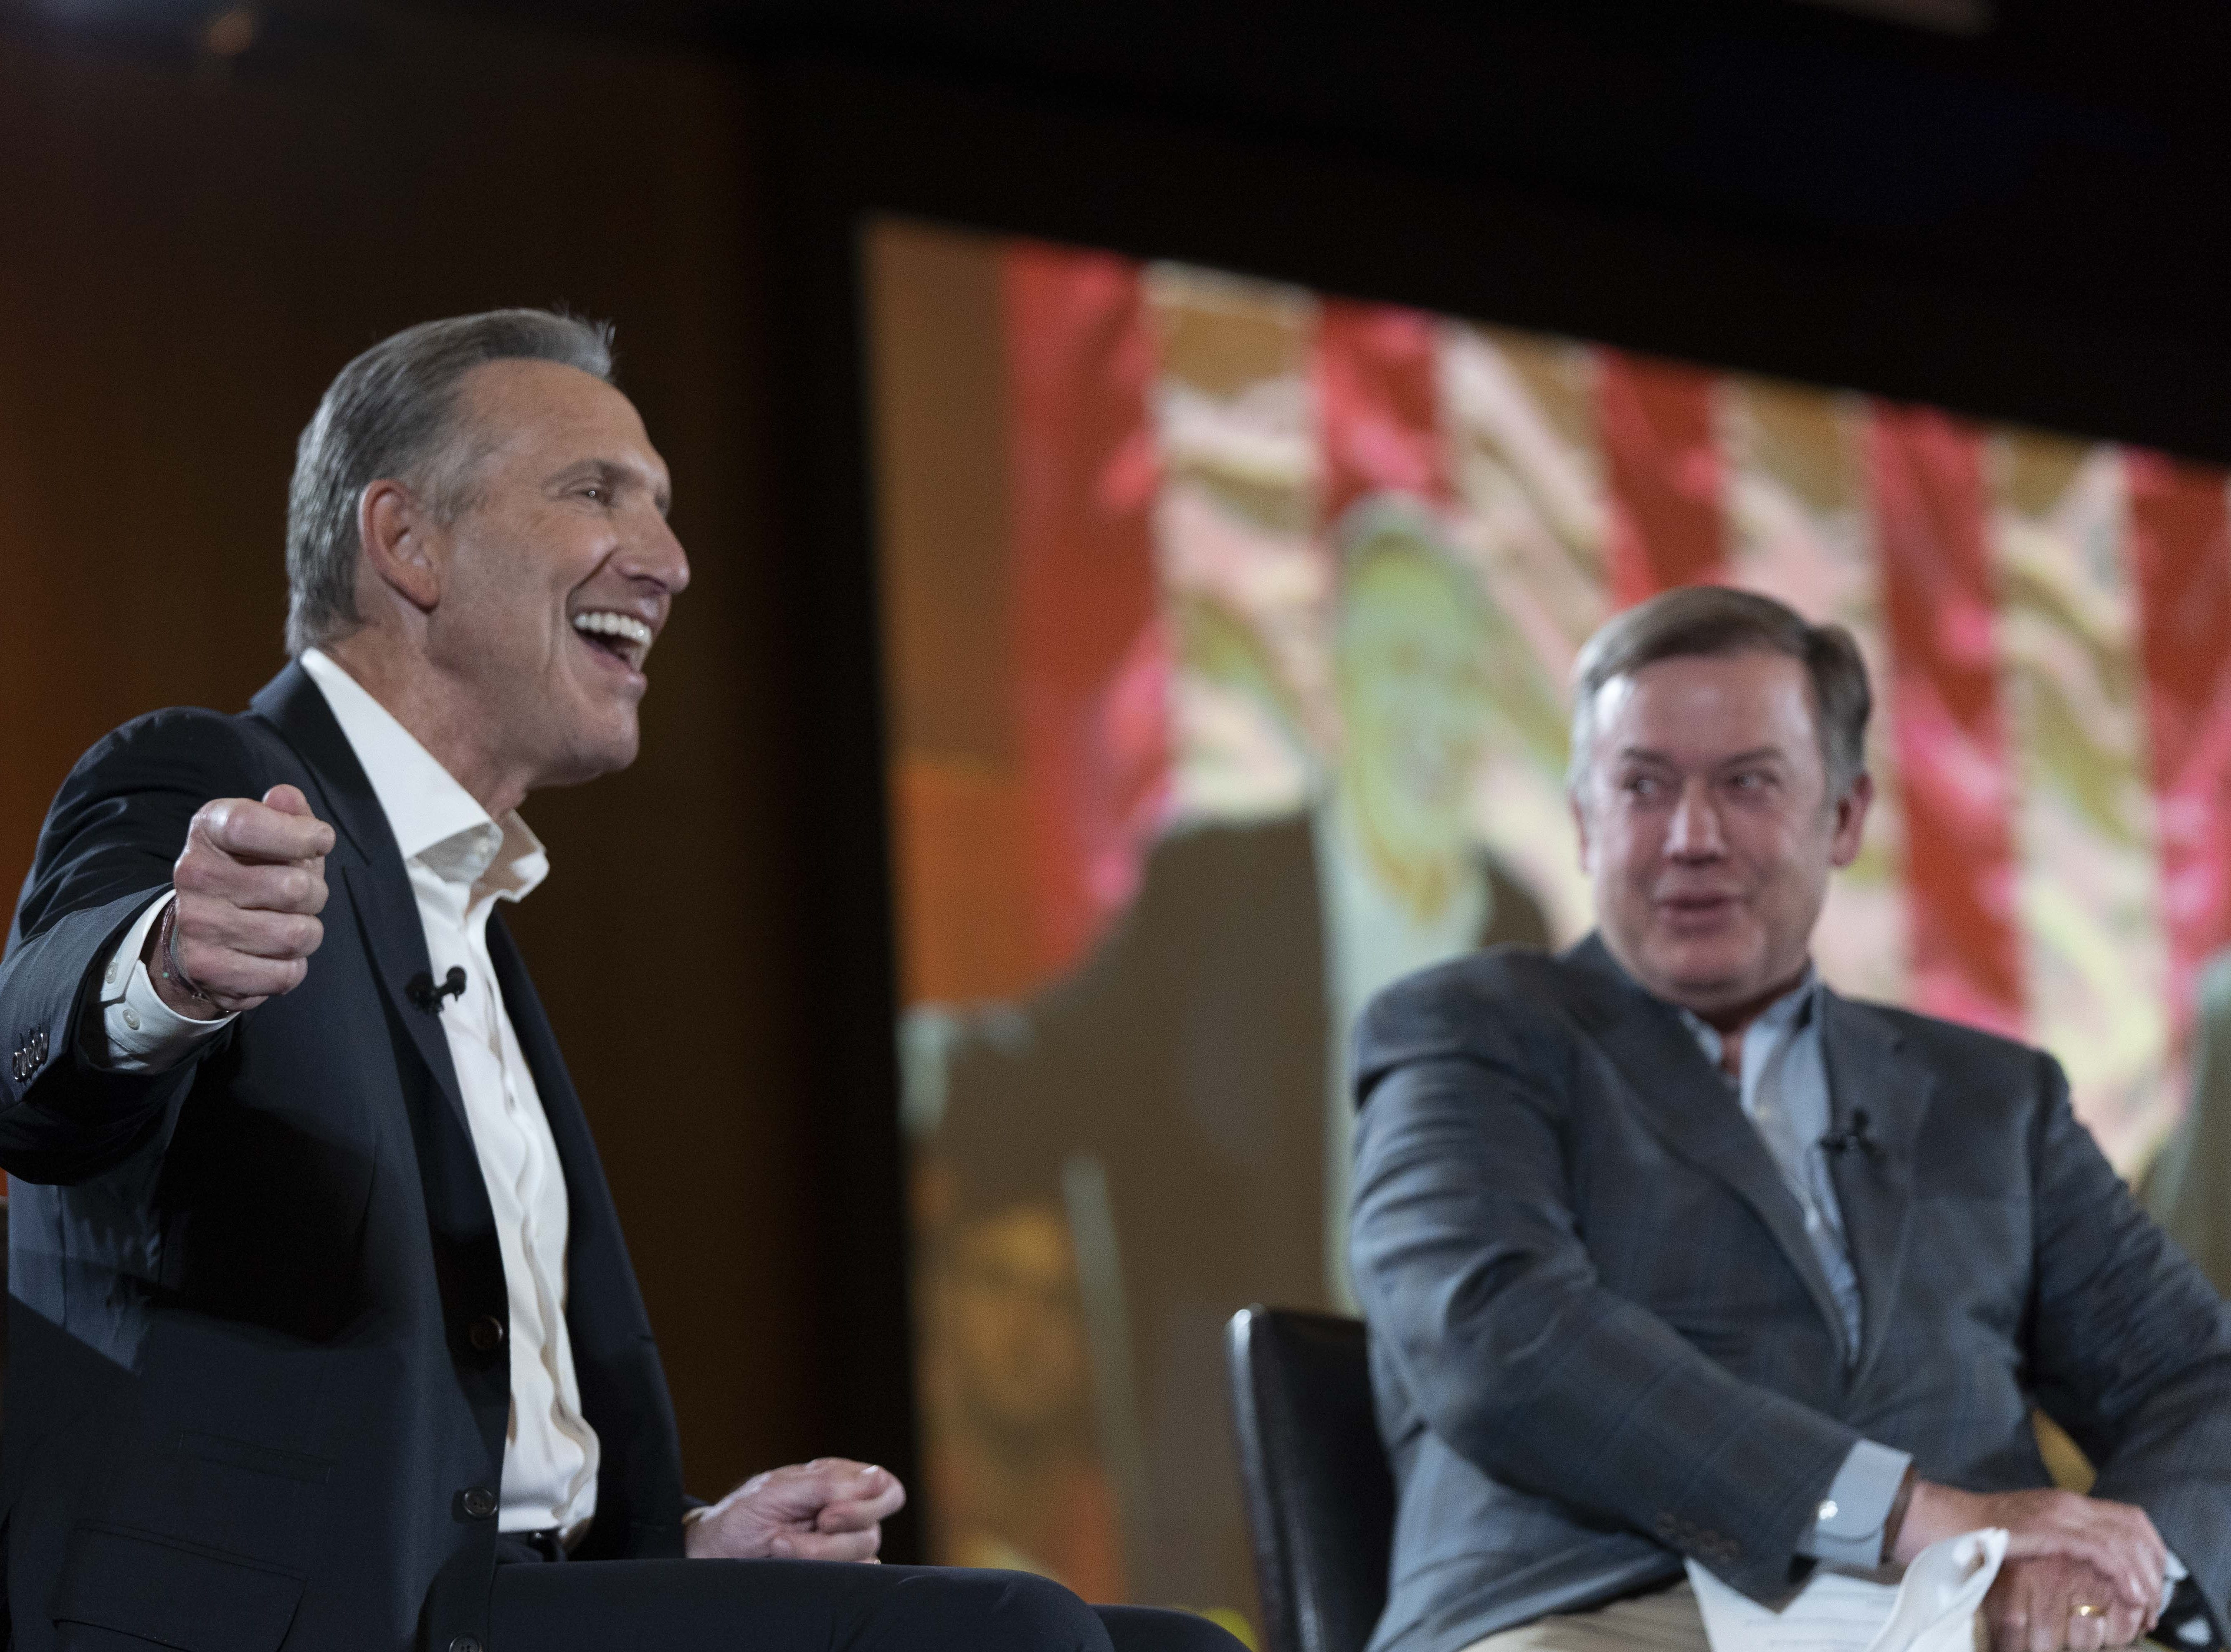 Former Starbucks CEO Howard Schultz (left) holds a town hall with Arizona State University President Michael Crow on Jan. 30, 2019.